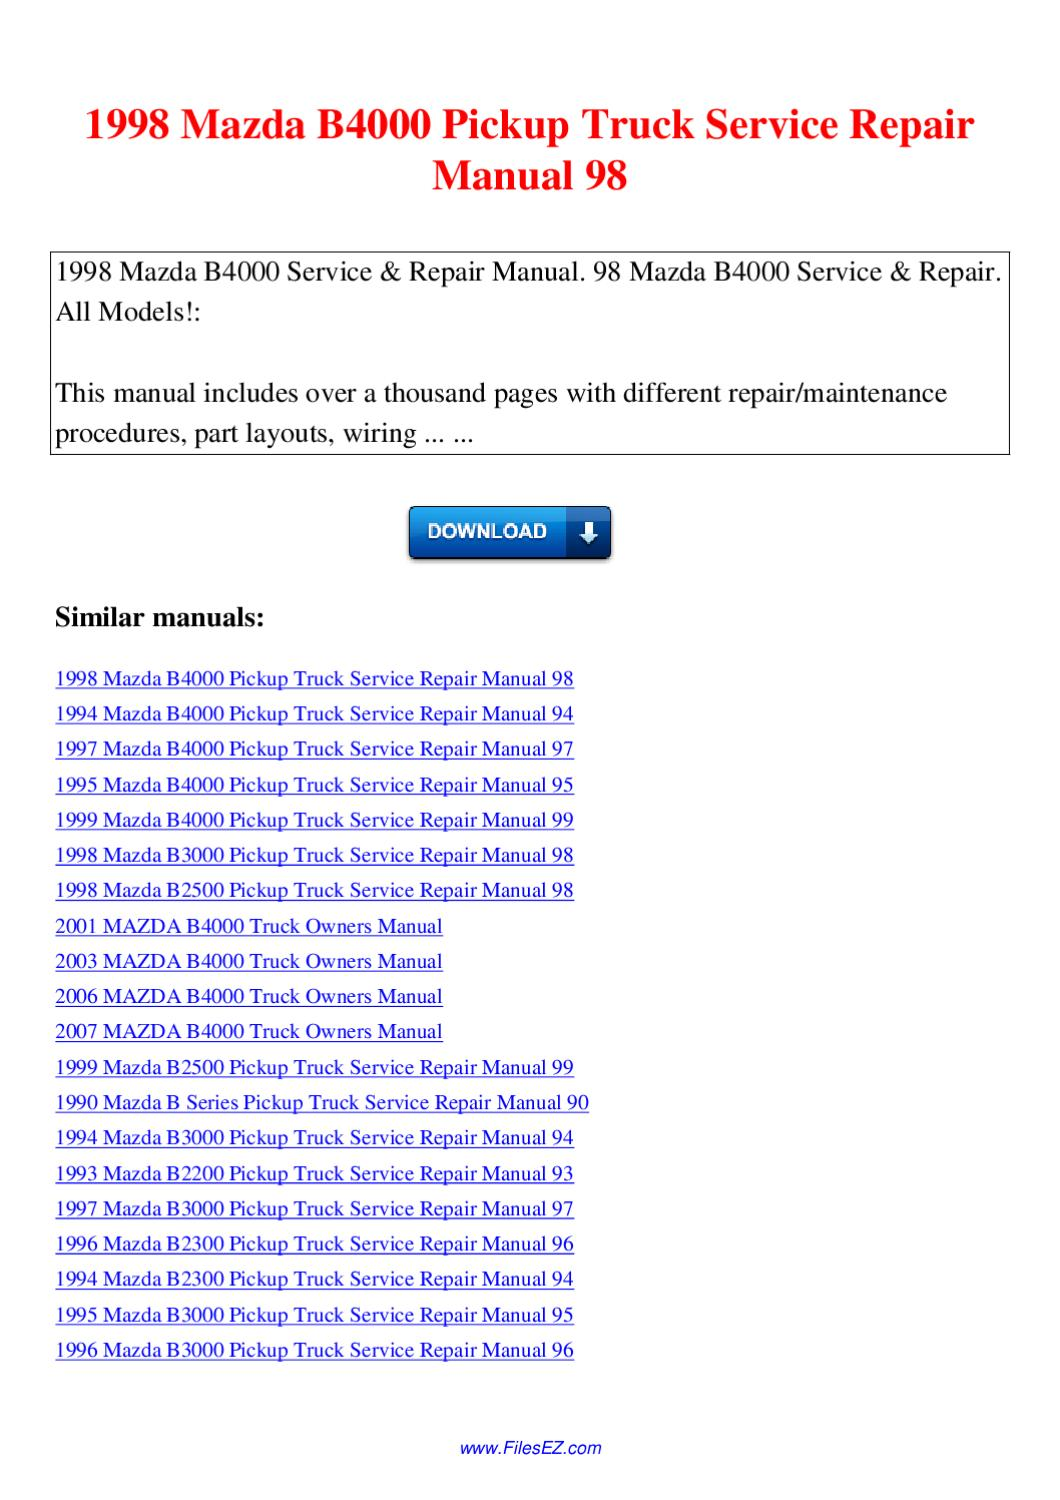 1998 Mazda B4000 Pickup Truck Service Repair Manual 98 by Nana Hong - issuu